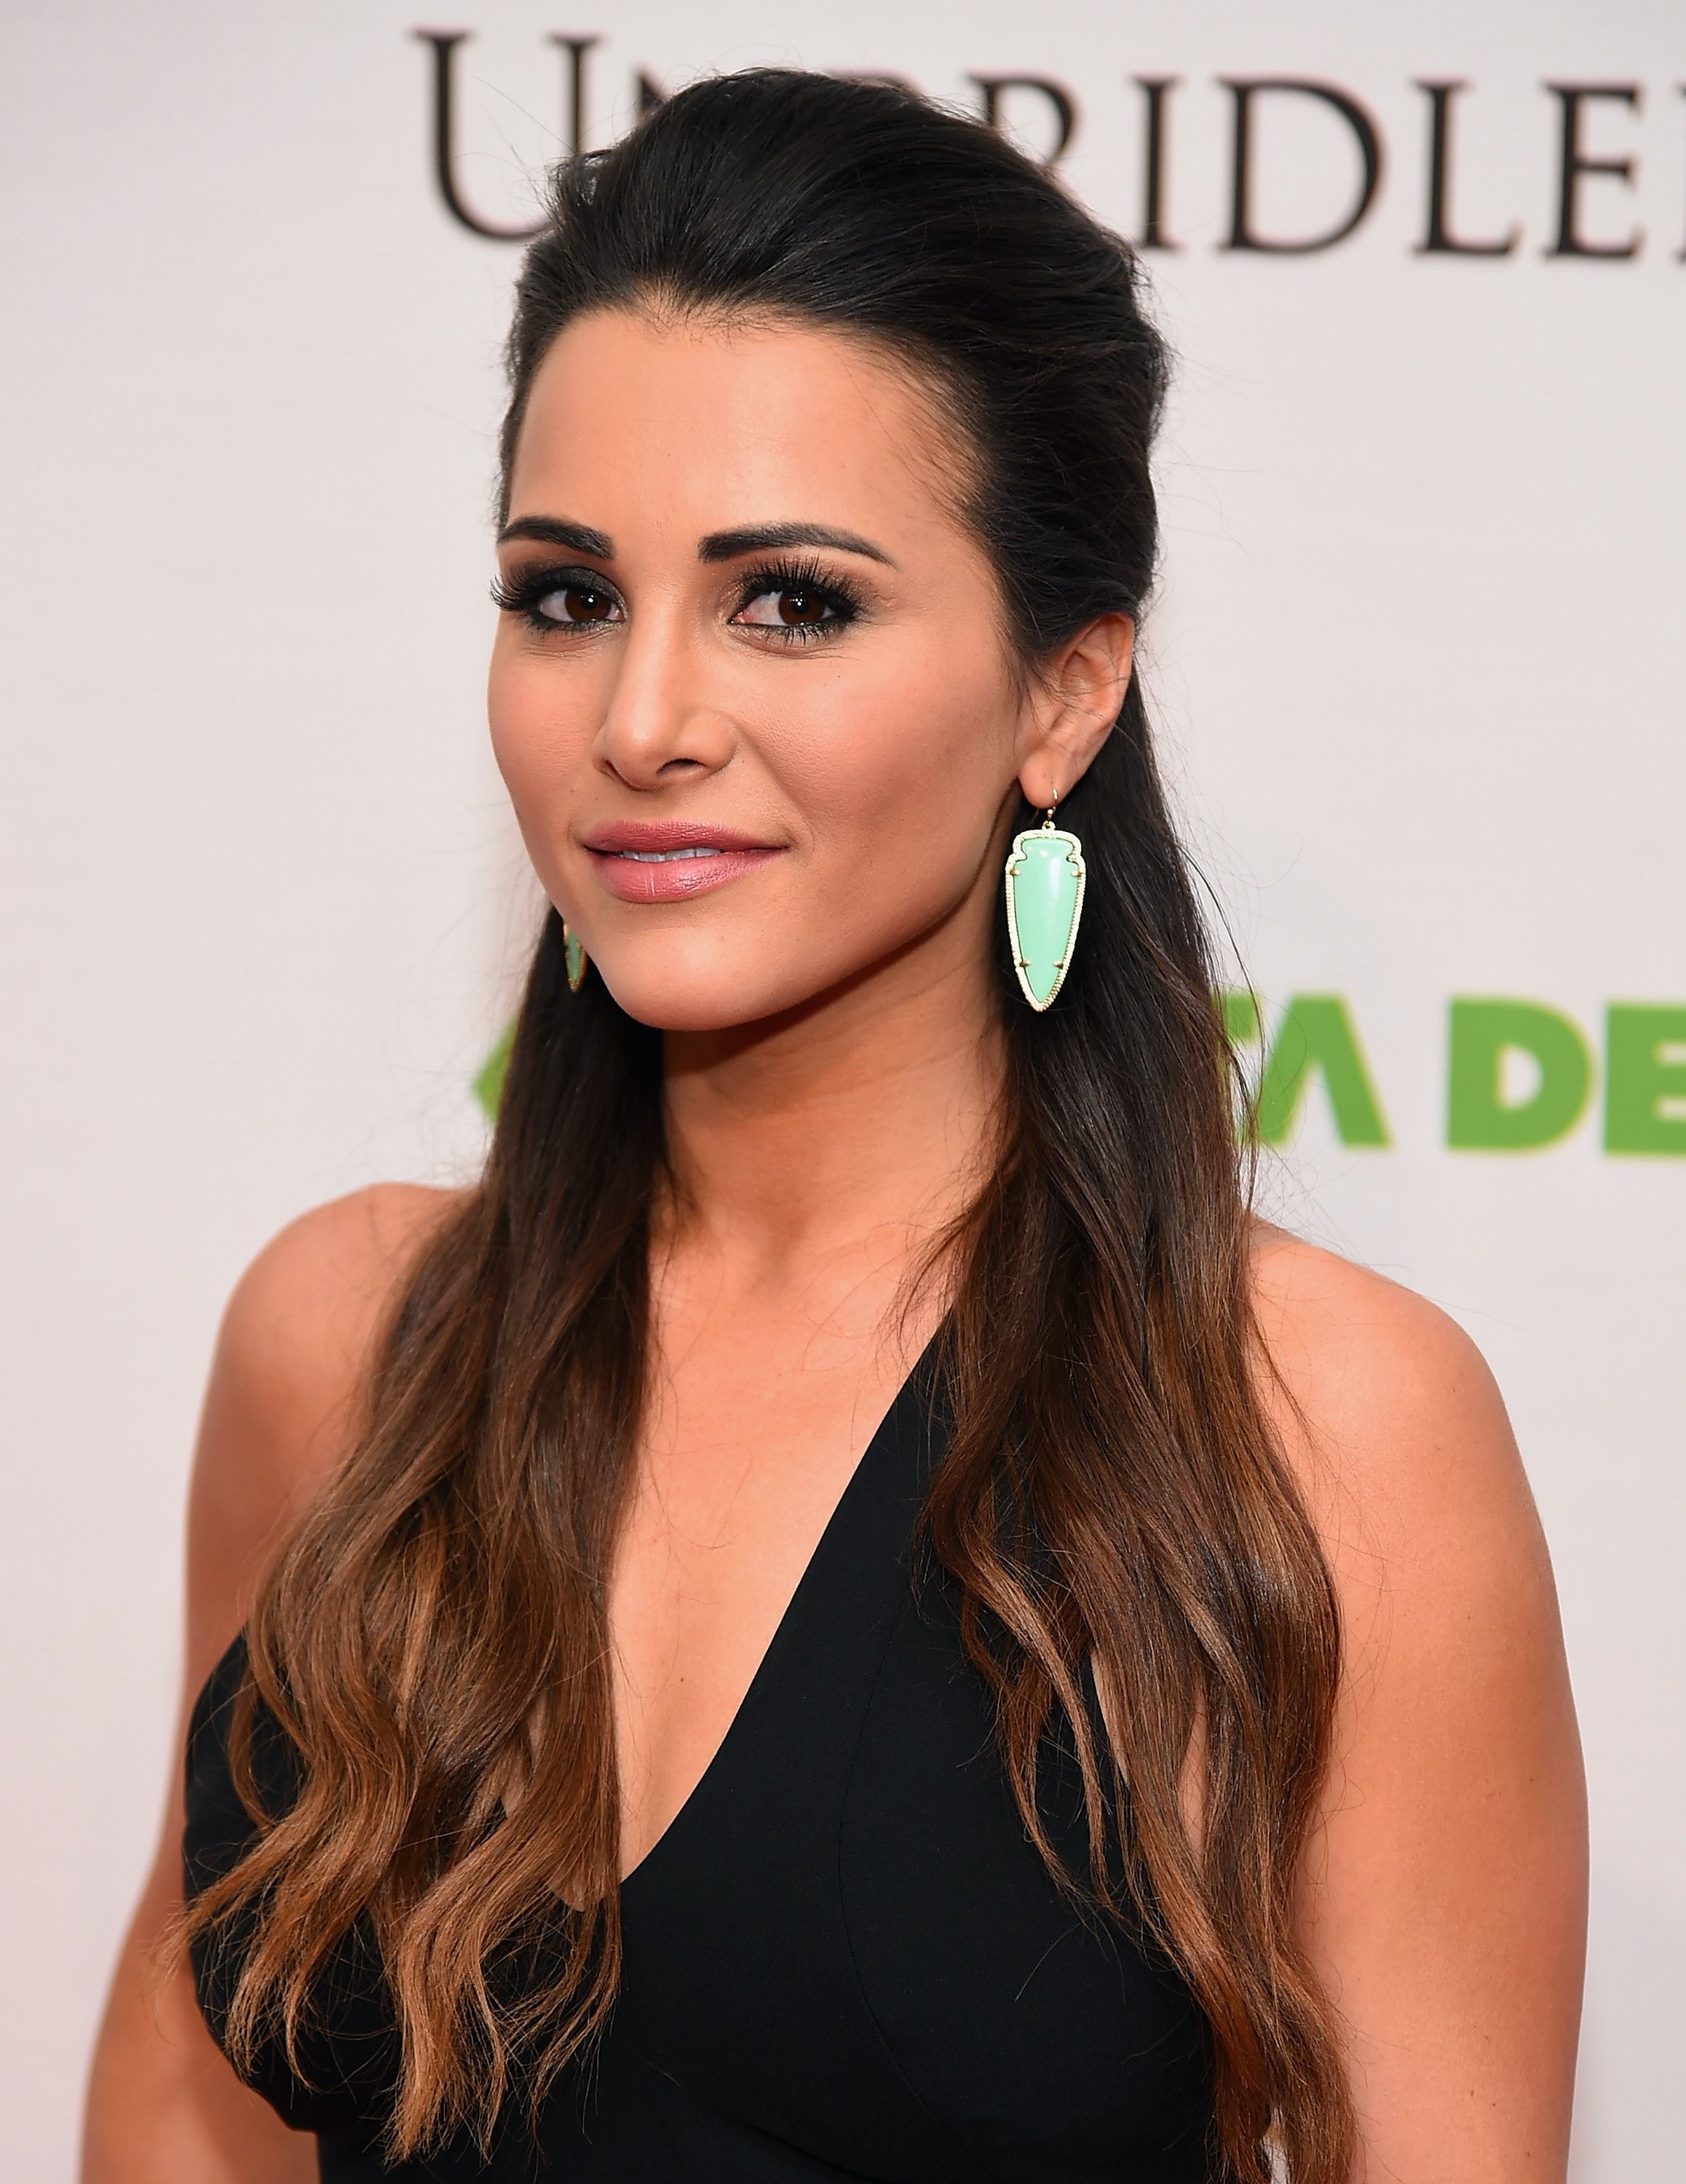 7 Burning Questions We Need Answered In 'The Bachelorette's Andi Dorfman's Tell-All 'It's Not Okay'